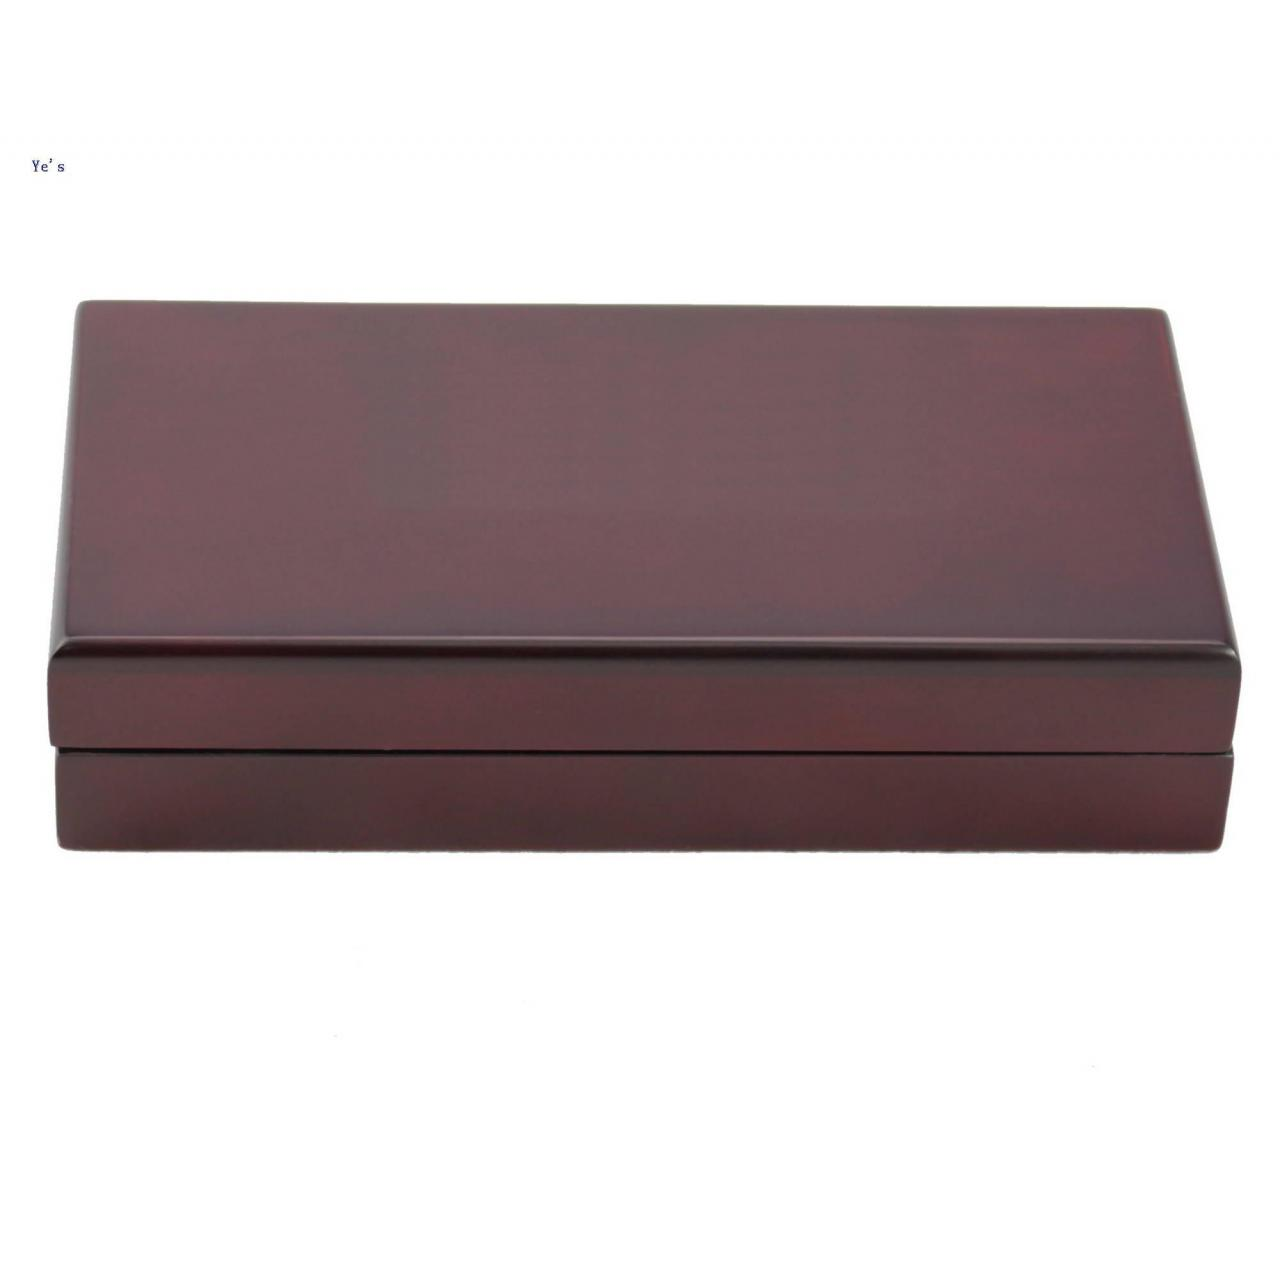 Buy cheap wooden presentation box Item:GB9C036A from wholesalers